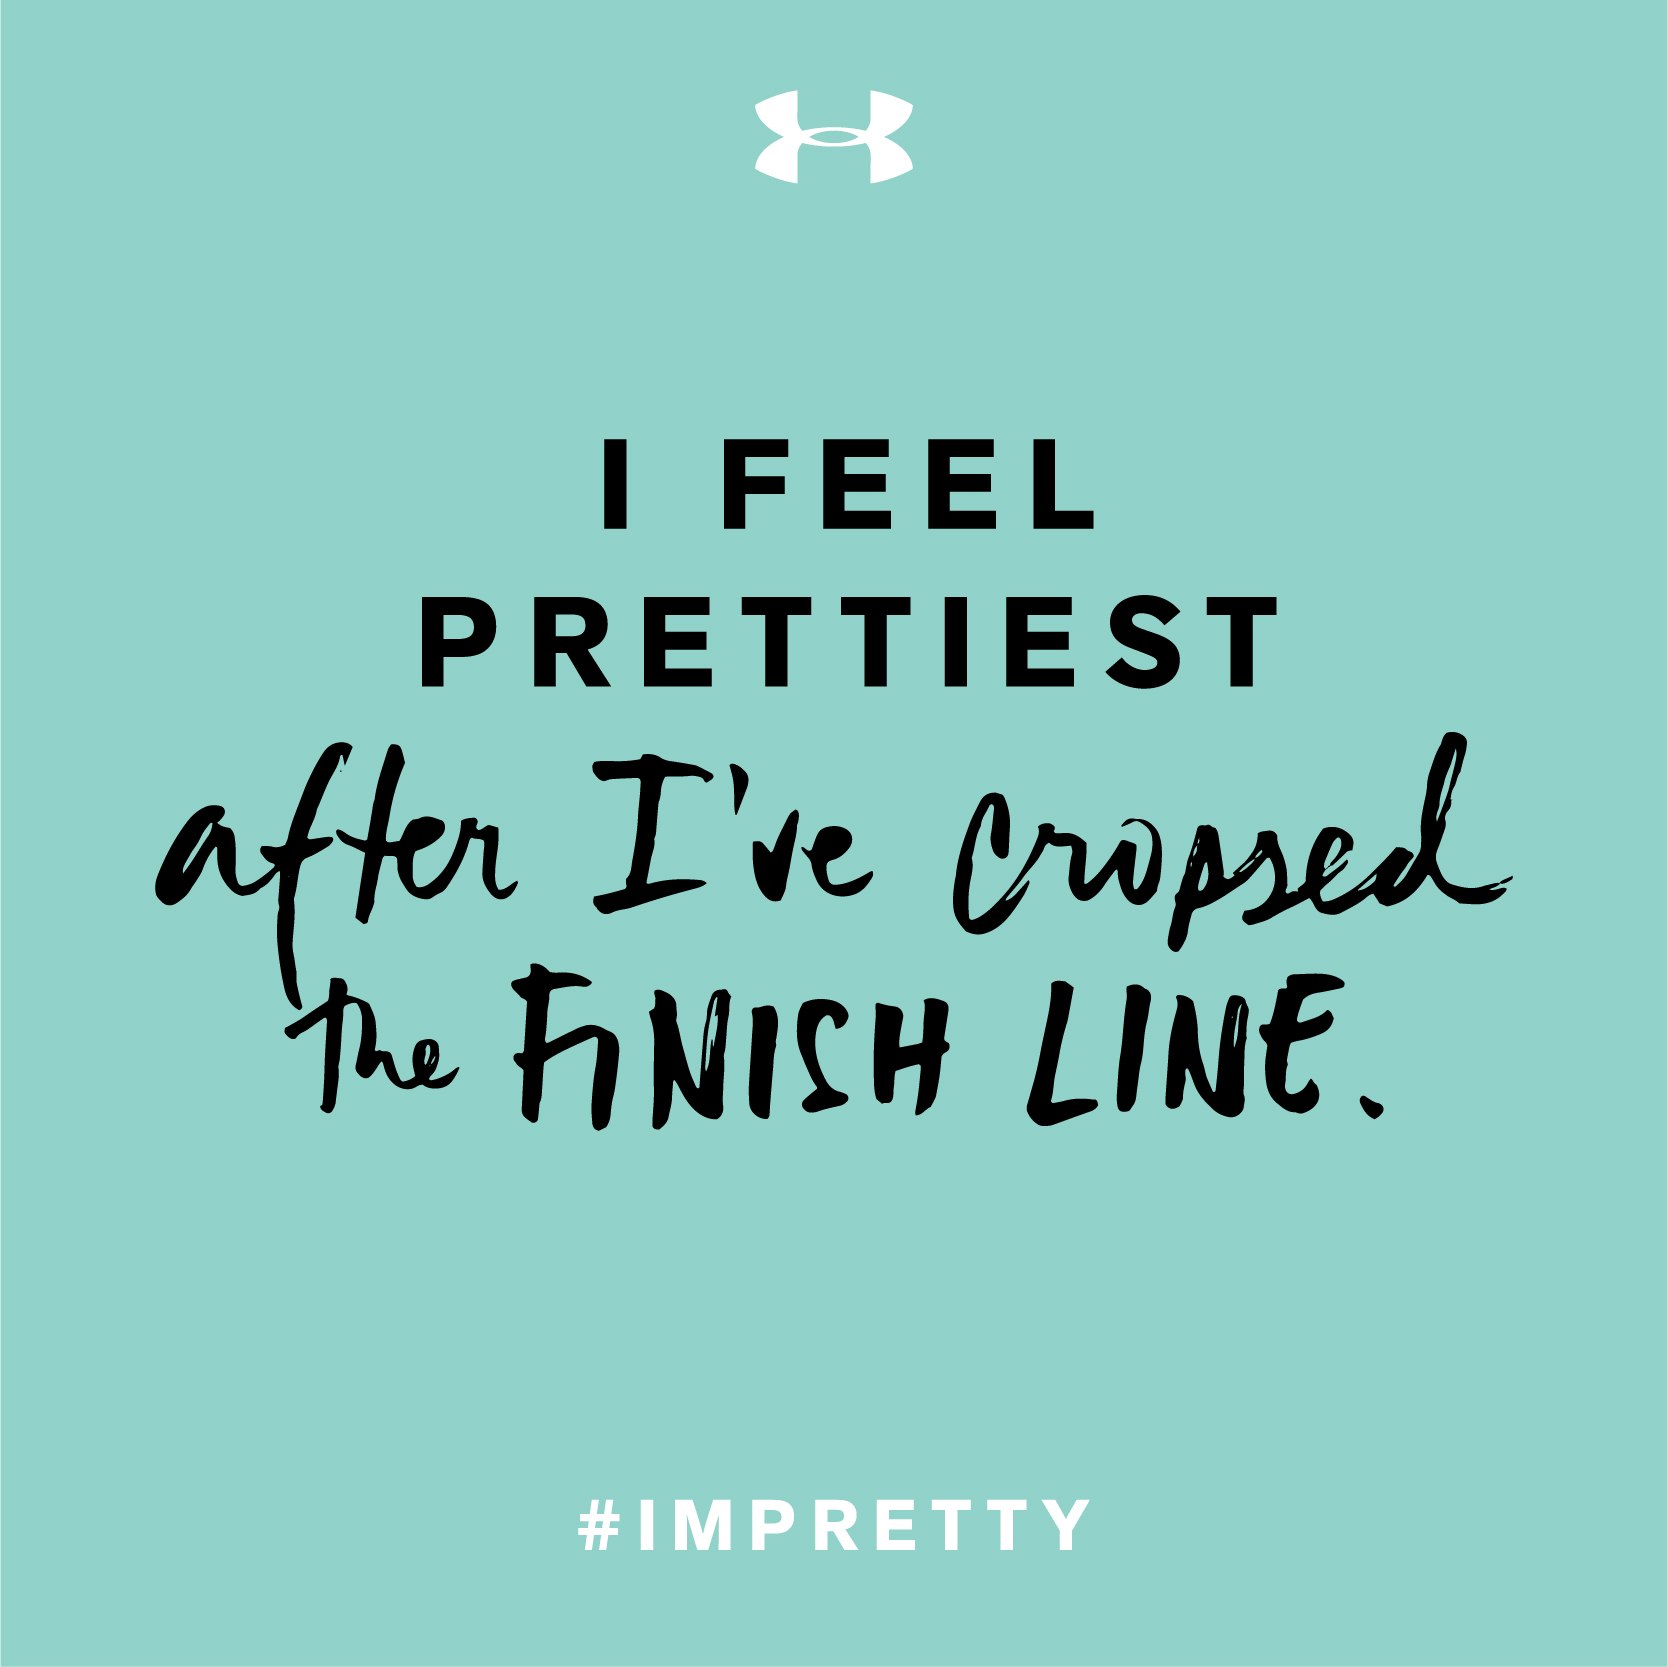 Instagram Social Graphics and Quotes_Quote - After I've Crossed the Finish Line.jpg